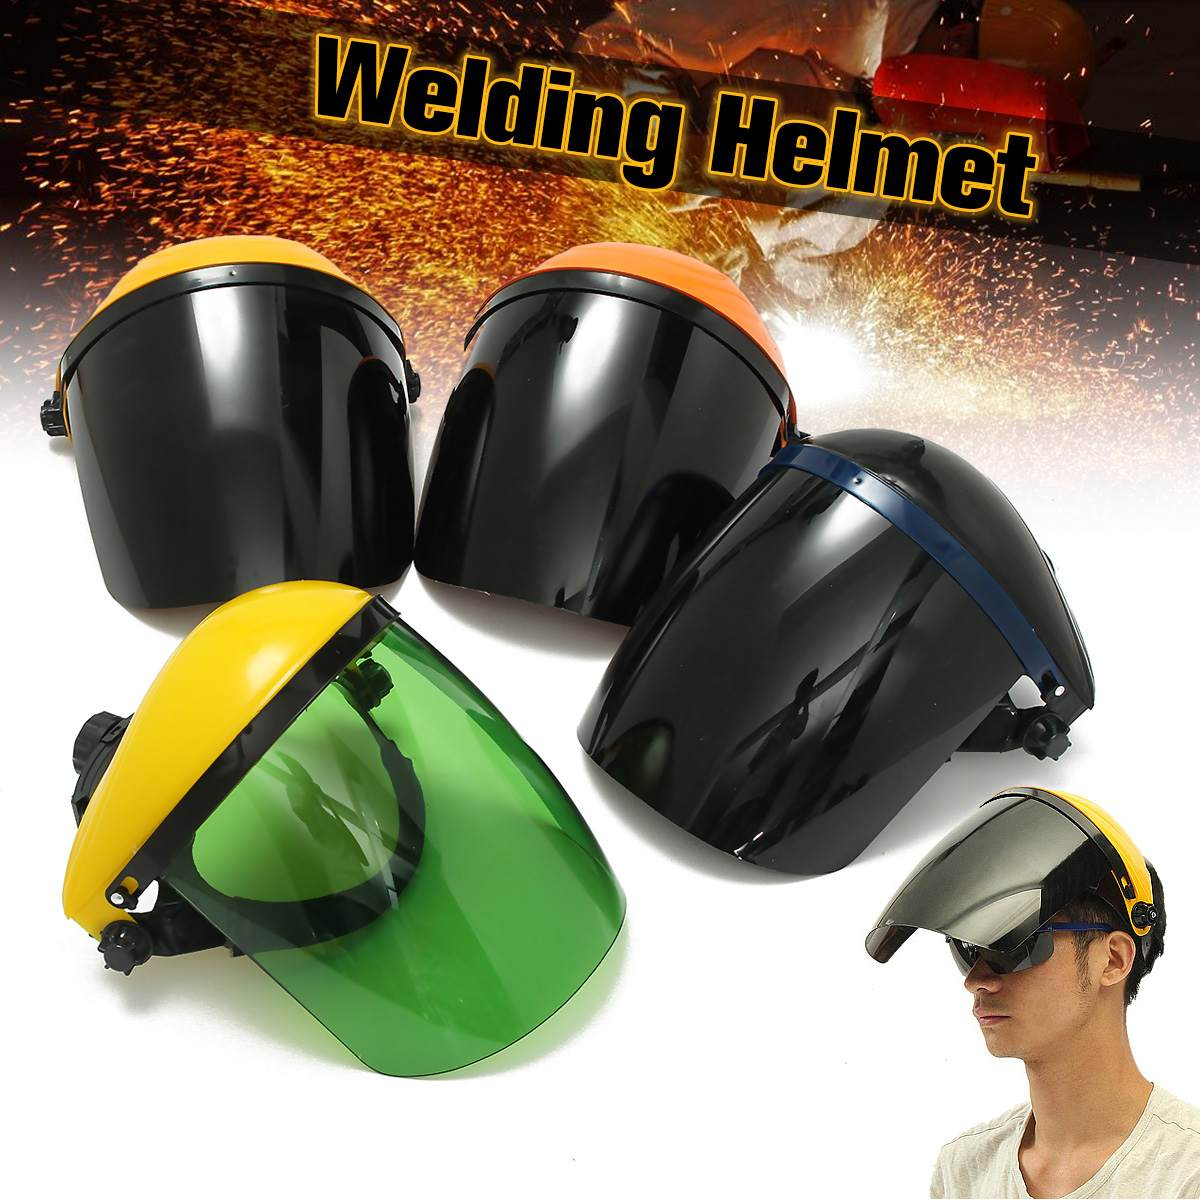 ARC Welding Mask Adjustable Welding Helmet Eye Protection For Welder Working Scratch Resistant With Safety Goggles